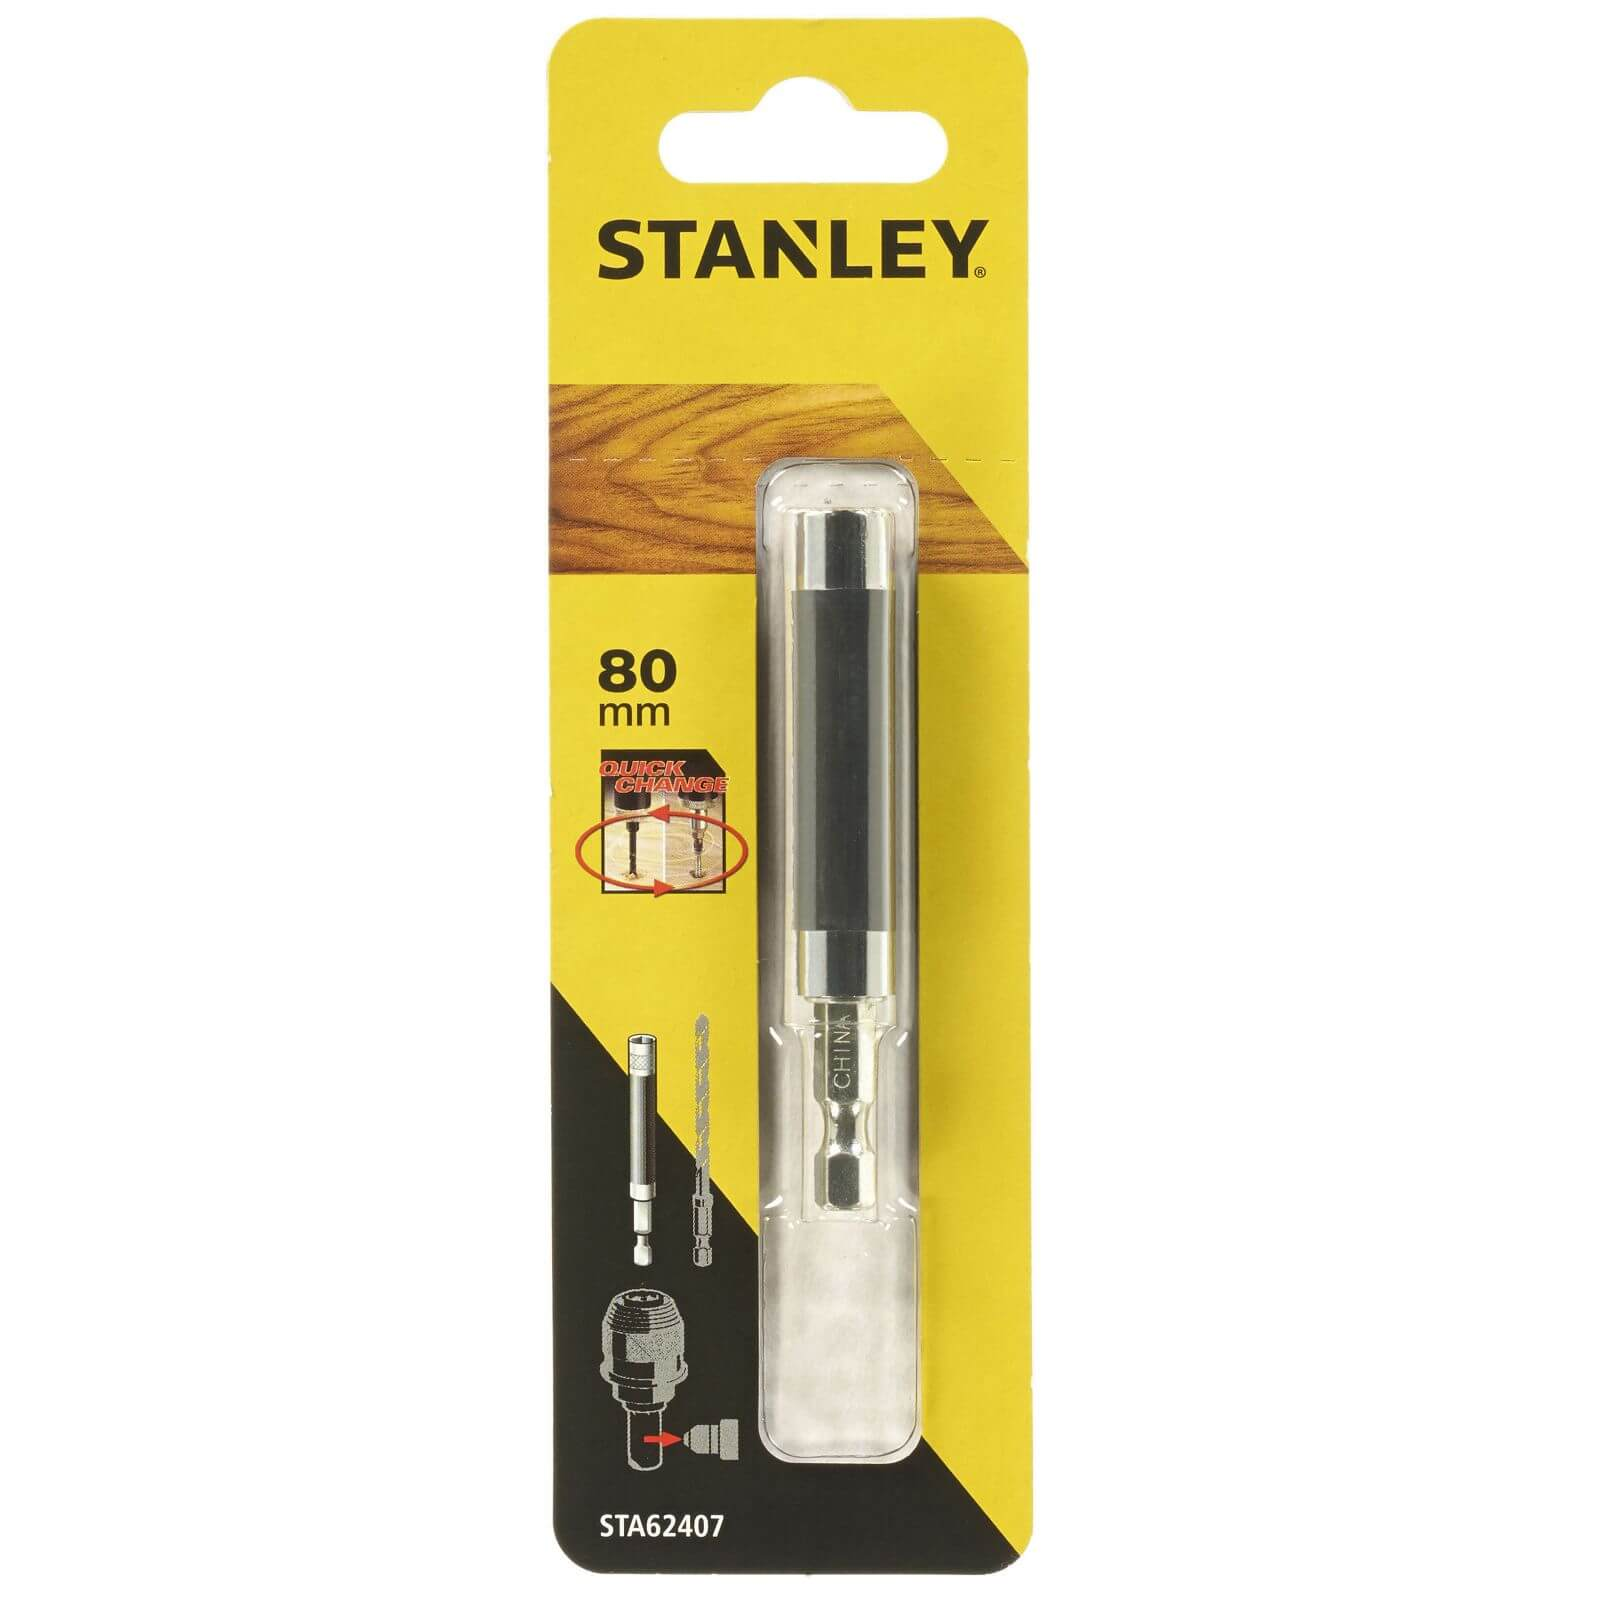 Stanley Fatmax Magnetic Bit Holder And Sleeve 80mm - STA62407-XJ